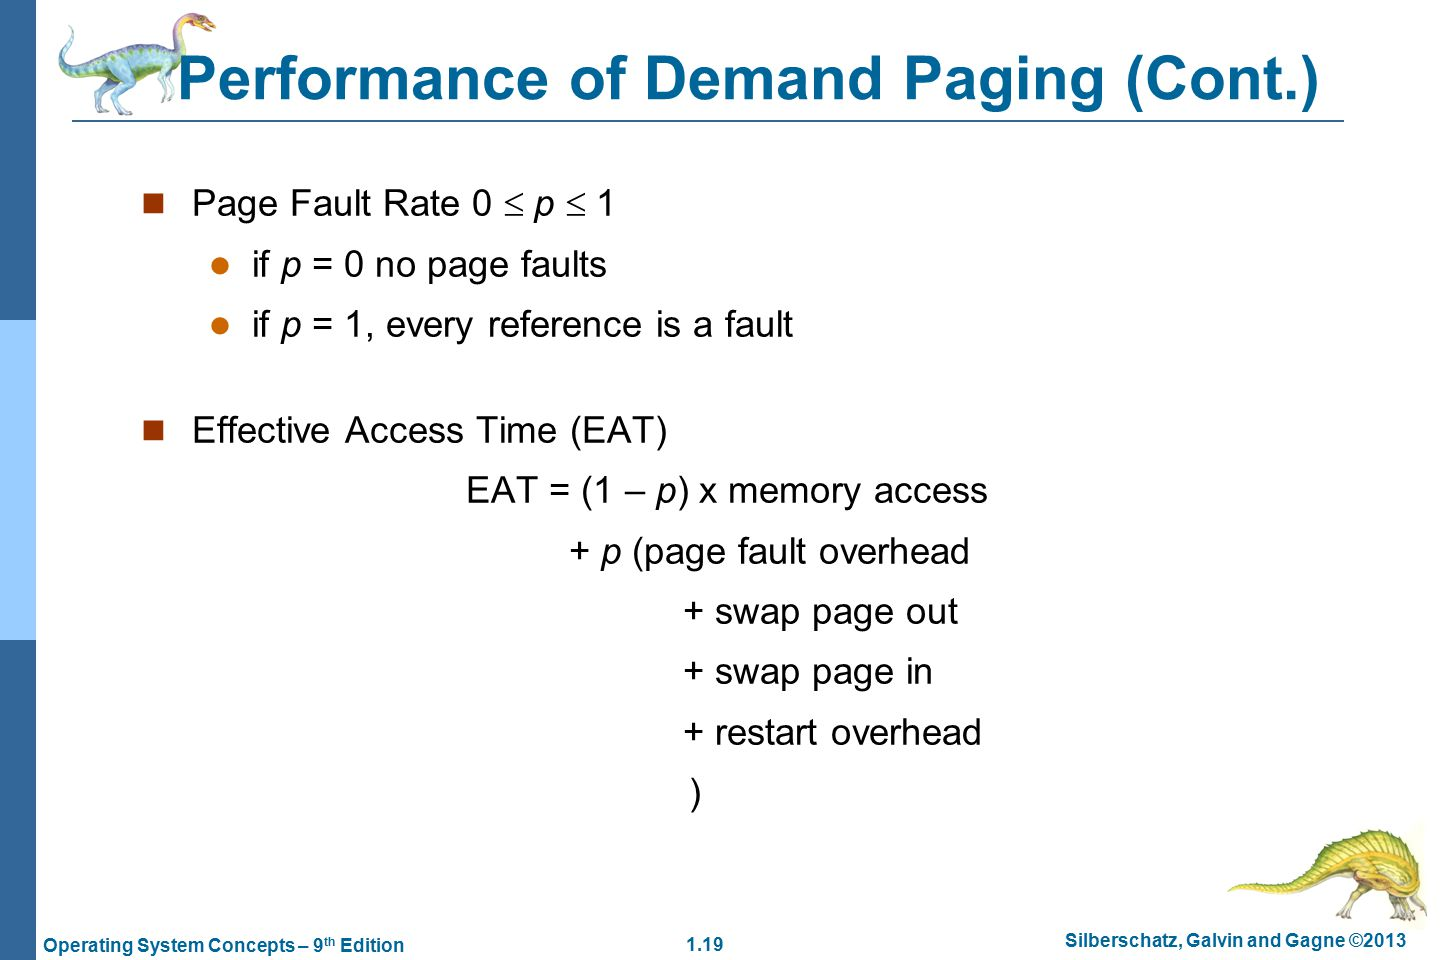 1.19 Silberschatz, Galvin and Gagne ©2013 Operating System Concepts – 9 th Edition Performance of Demand Paging (Cont.) Page Fault Rate 0  p  1 if p = 0 no page faults if p = 1, every reference is a fault Effective Access Time (EAT) EAT = (1 – p) x memory access + p (page fault overhead + swap page out + swap page in + restart overhead )